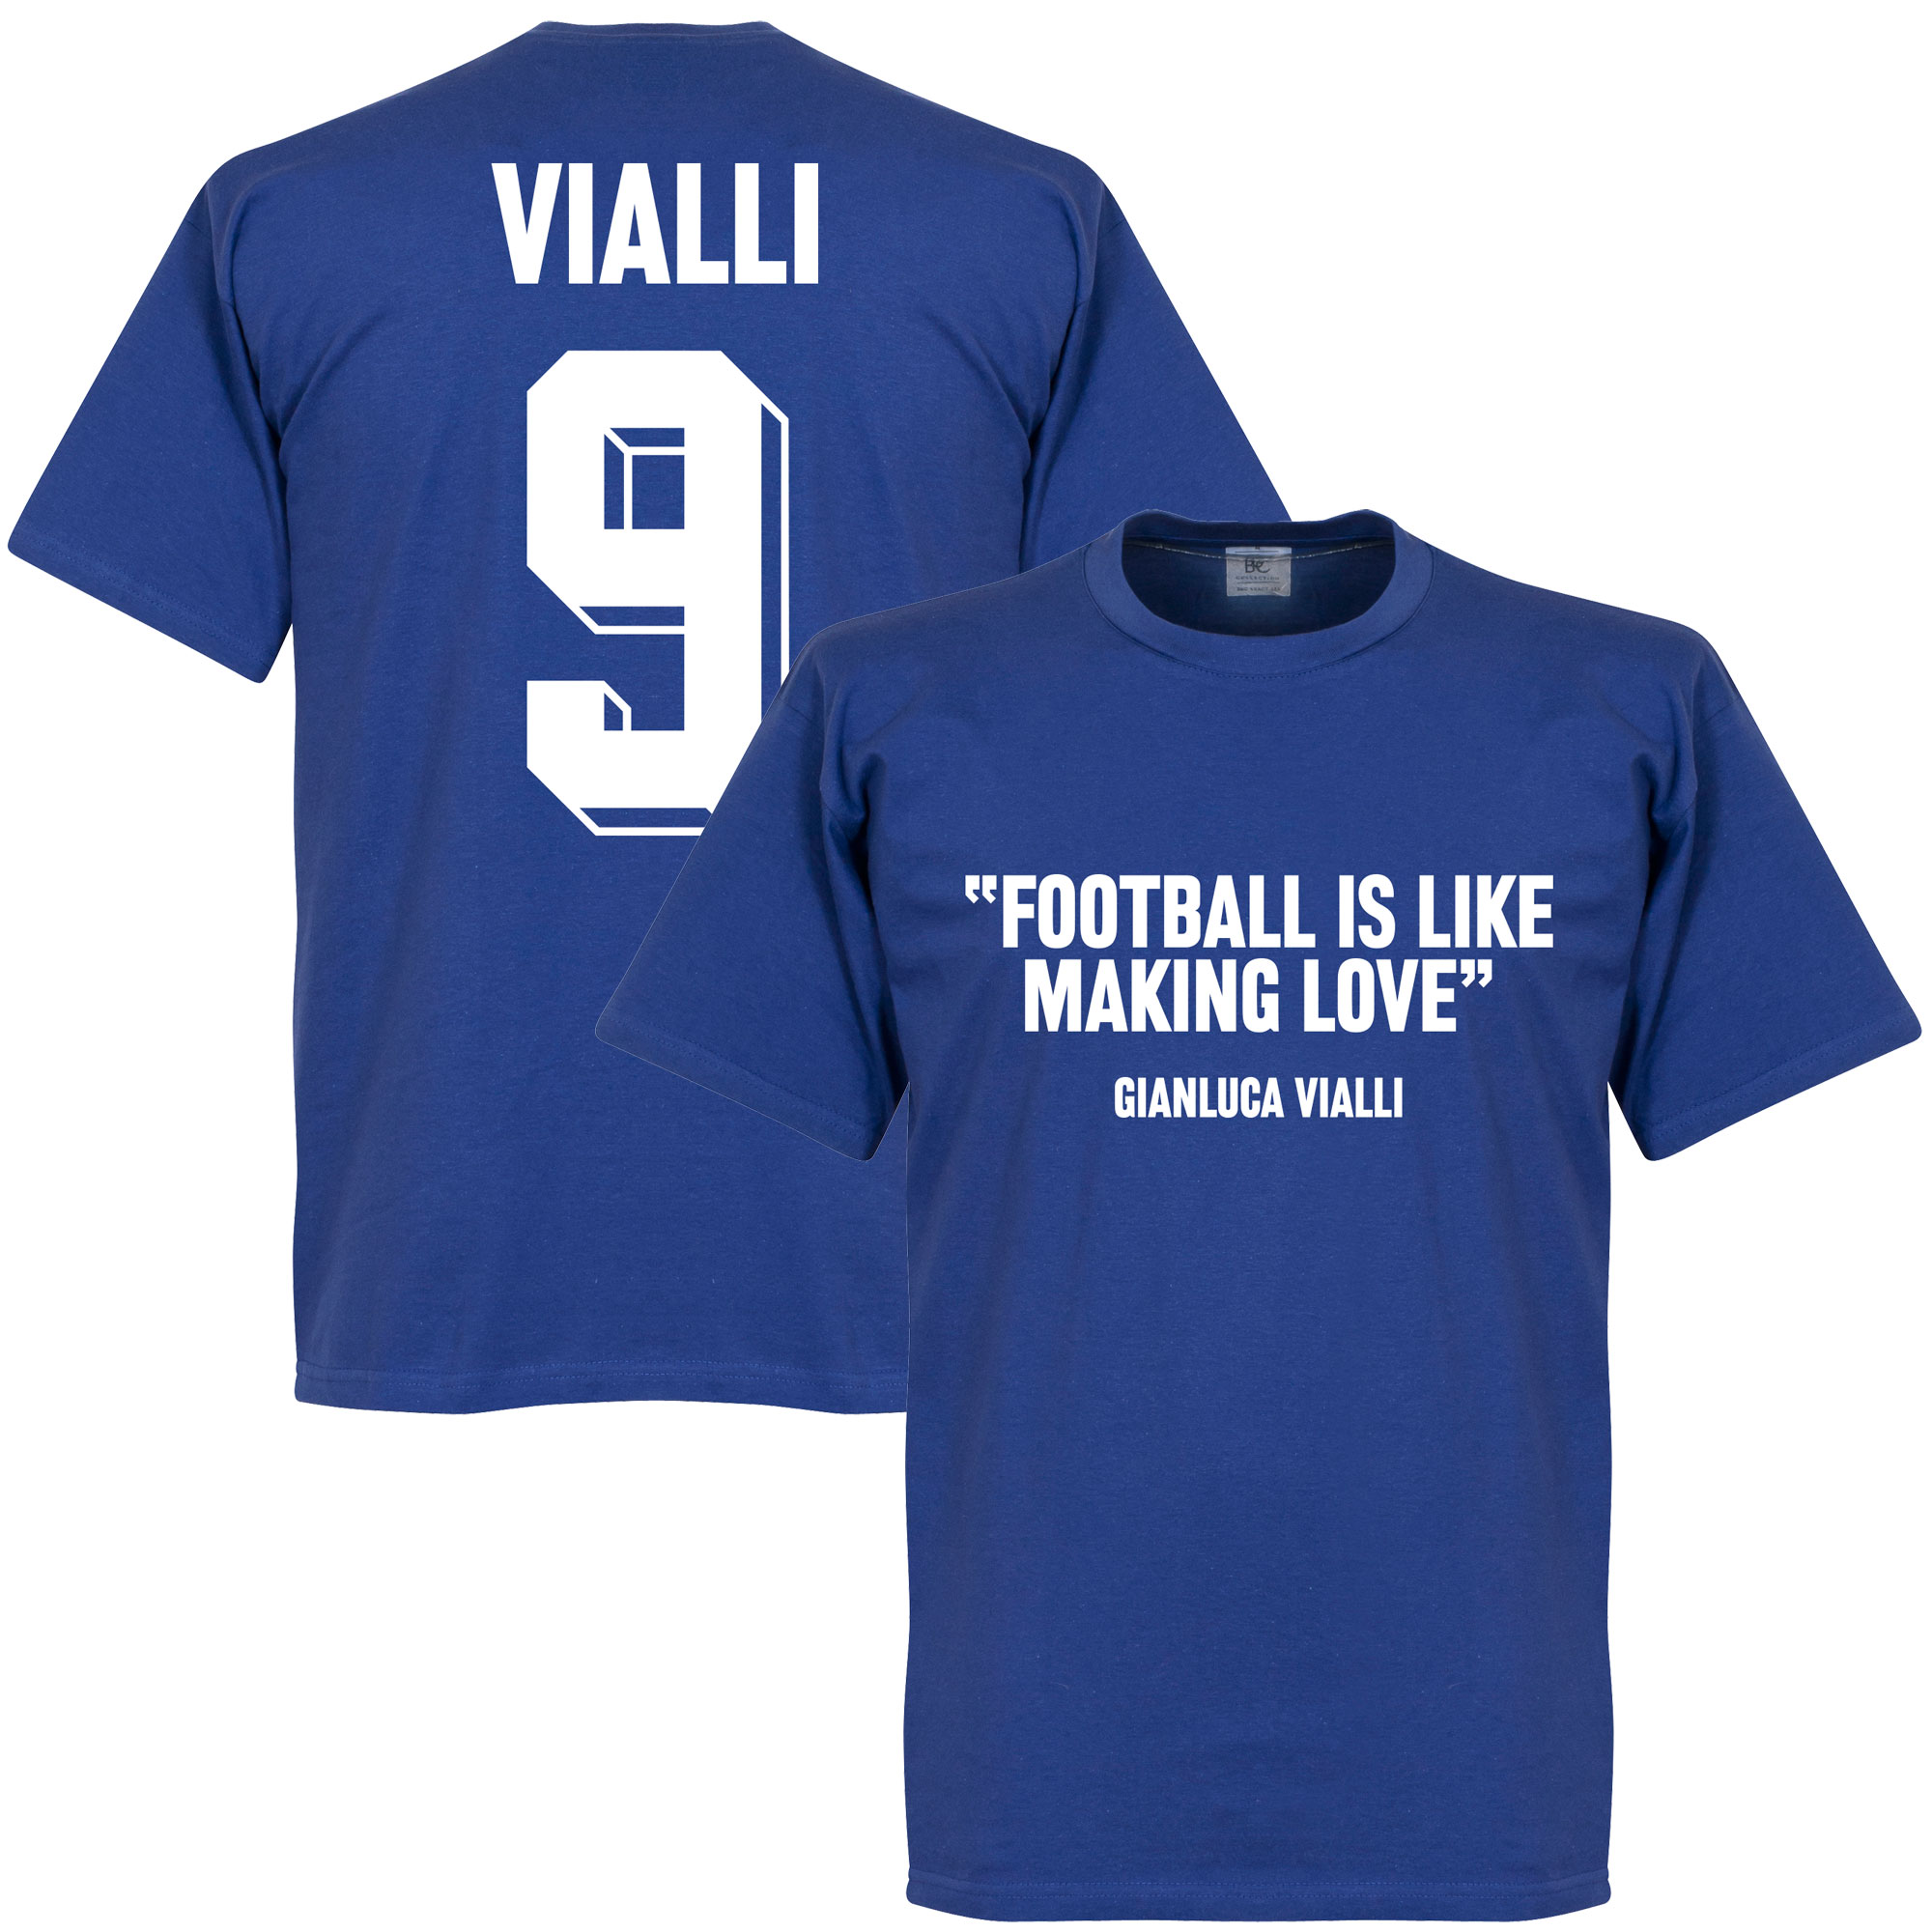 Vialli 9 'Football Is Like Making Love' Tee - XXXXL